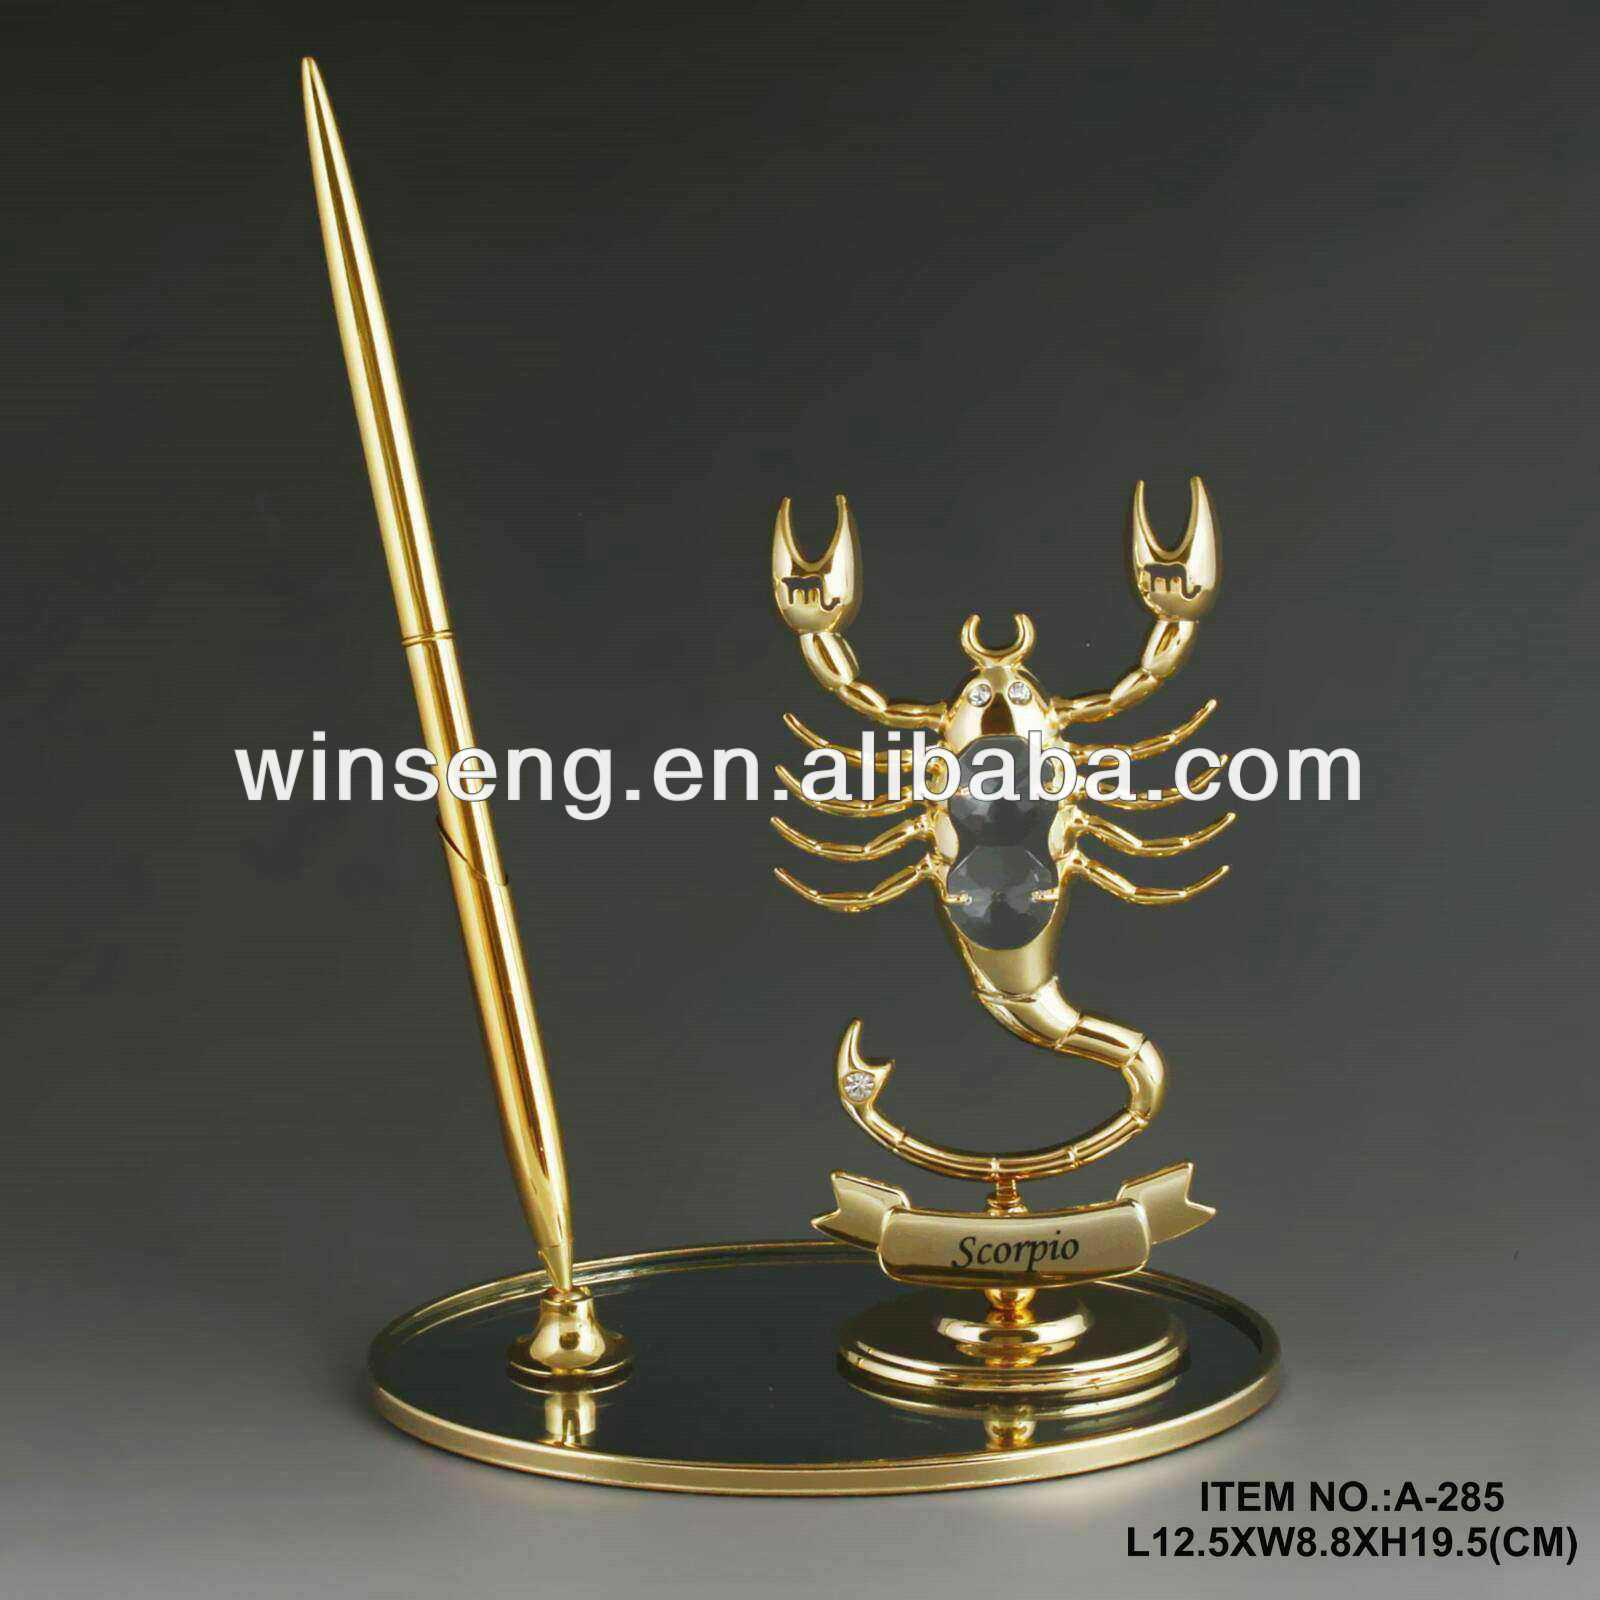 Hot Sale 24K gold plated Zodiac Scorpio Pen Set made with swarovski elements